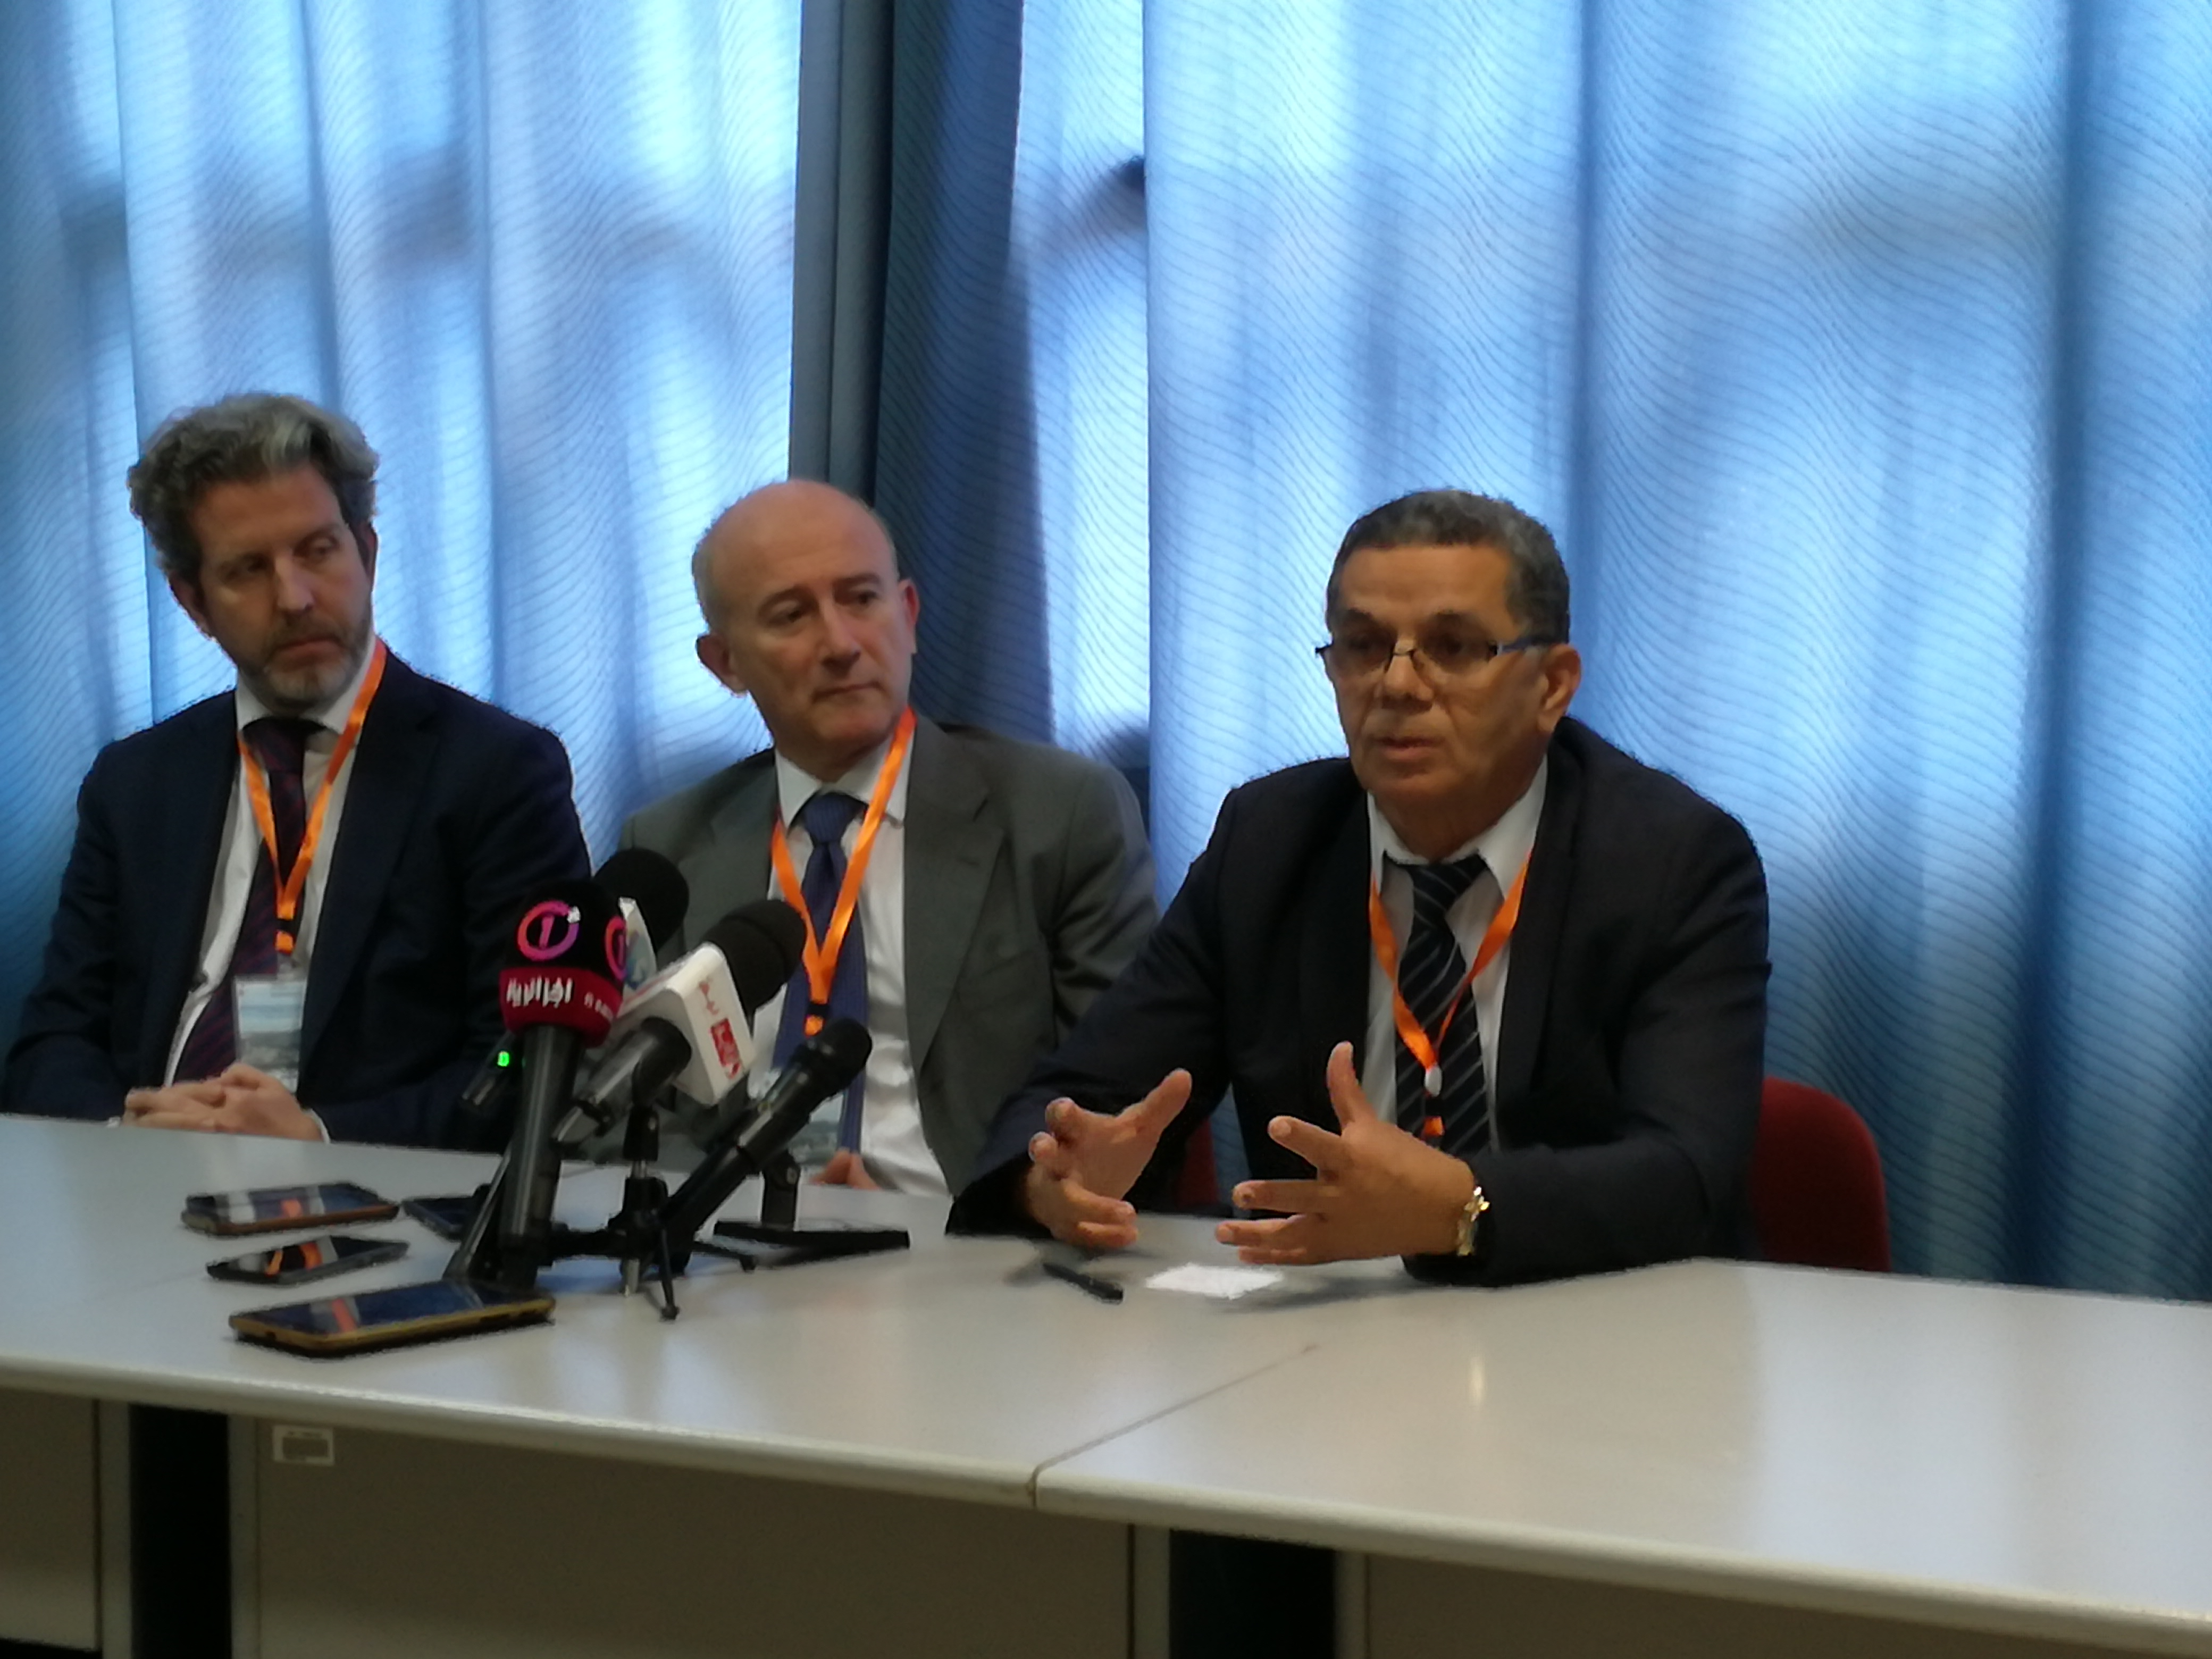 Press Conference - Rabah Touileb addressing the journalists